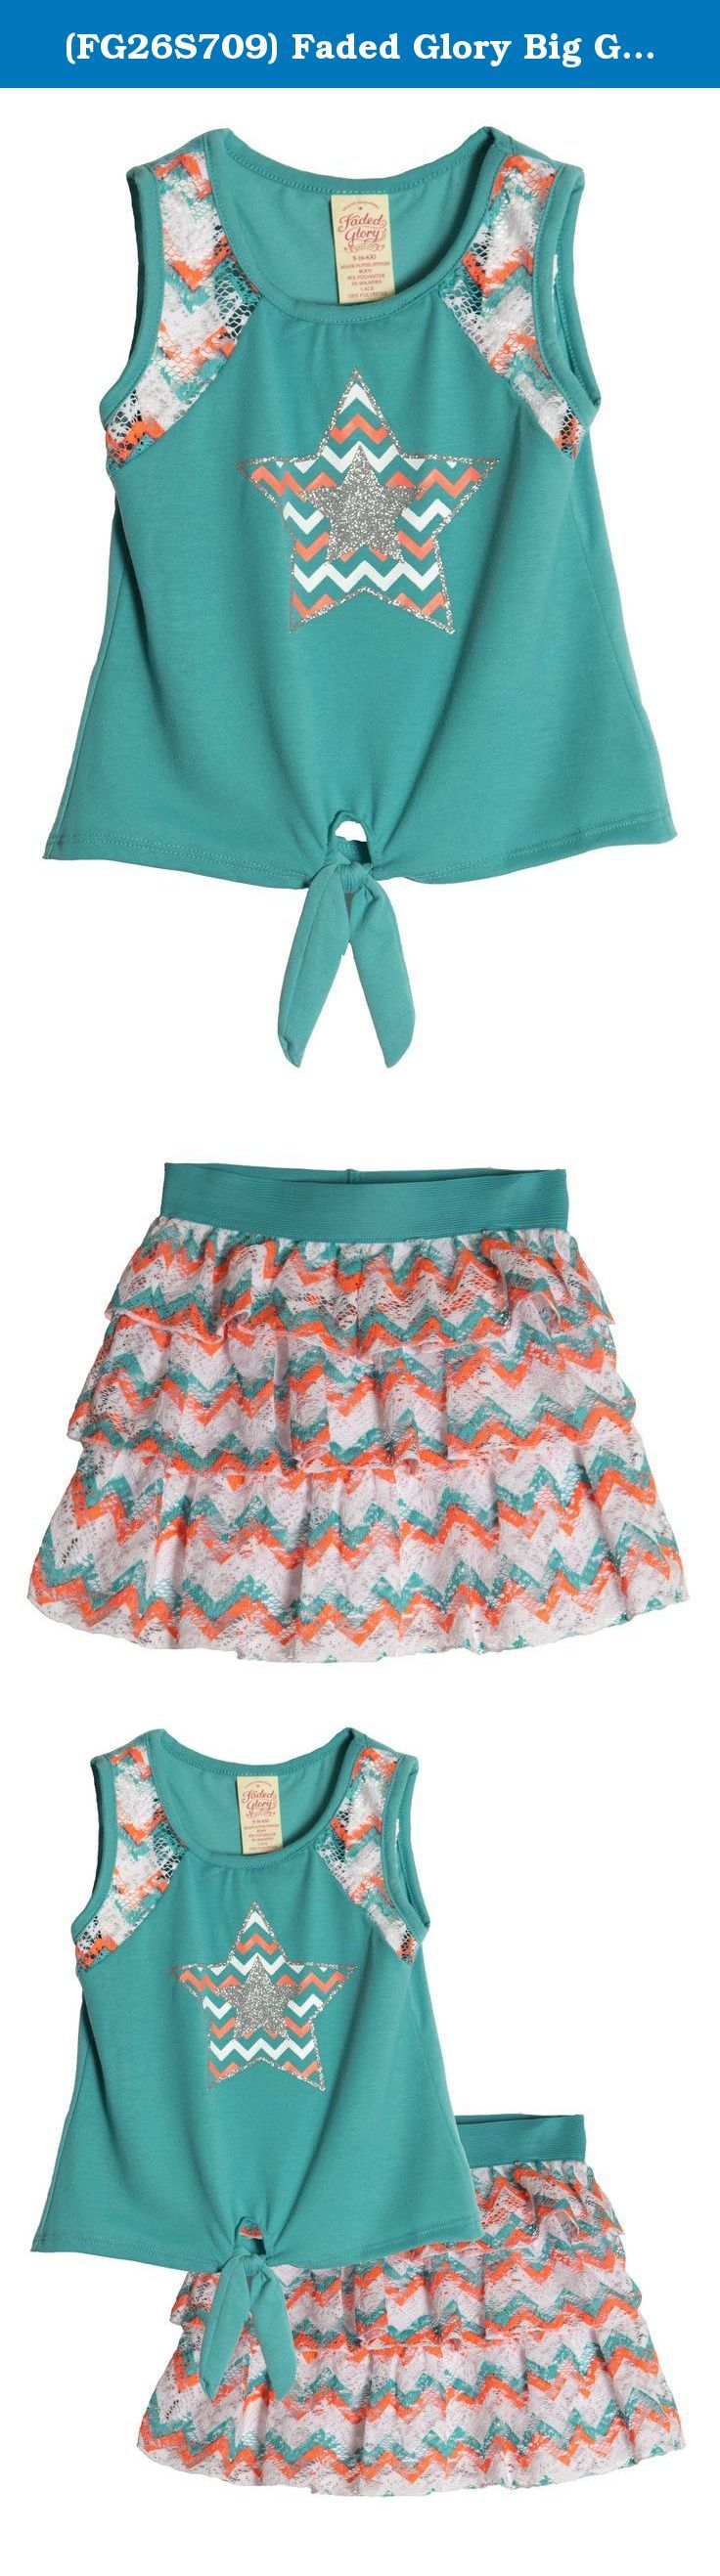 (FG26S709) Faded Glory Big Girls 2 Piece Print Challis Tiered Skirt Set in Mint Size: 6/6X. 2 PIECE Girls Clothing Sets include tunic top and matching skirt. FULLY LINED top is comfortable to wear and made of 95% polyester and 5% Spandex for stretch comfort and easy care. Skort is 100% Polyester and lined with a 60% Cotton and 40% Polyester Short for comfort and modesty. TREND RIGHT PRINTS AND TRIMS - These sets feature Stretch lace and mixed media skirts for a put together sophisticated...